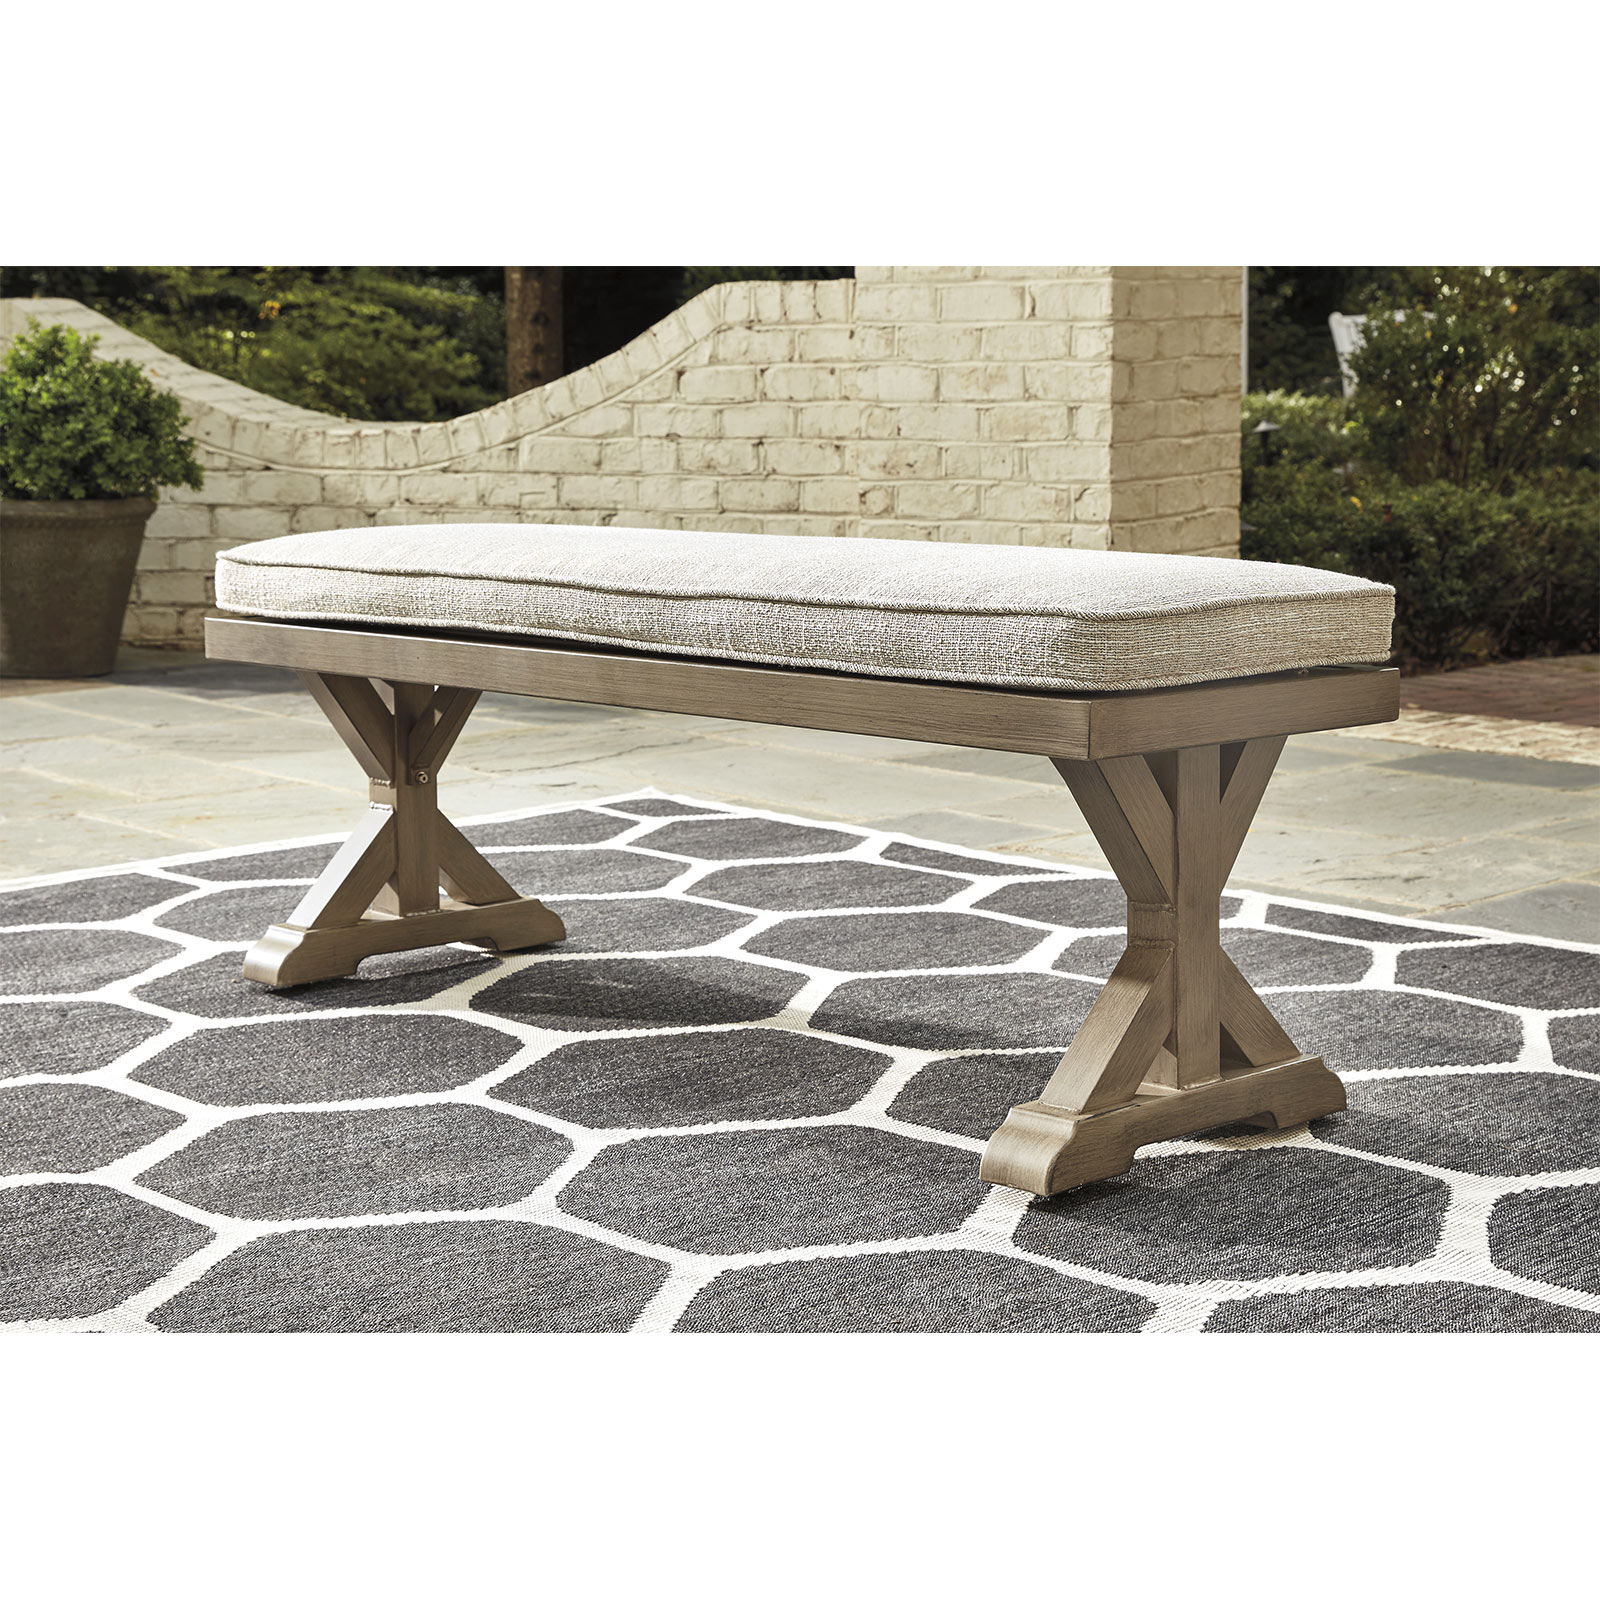 Ashley Direct Bench With Cushion P791-600